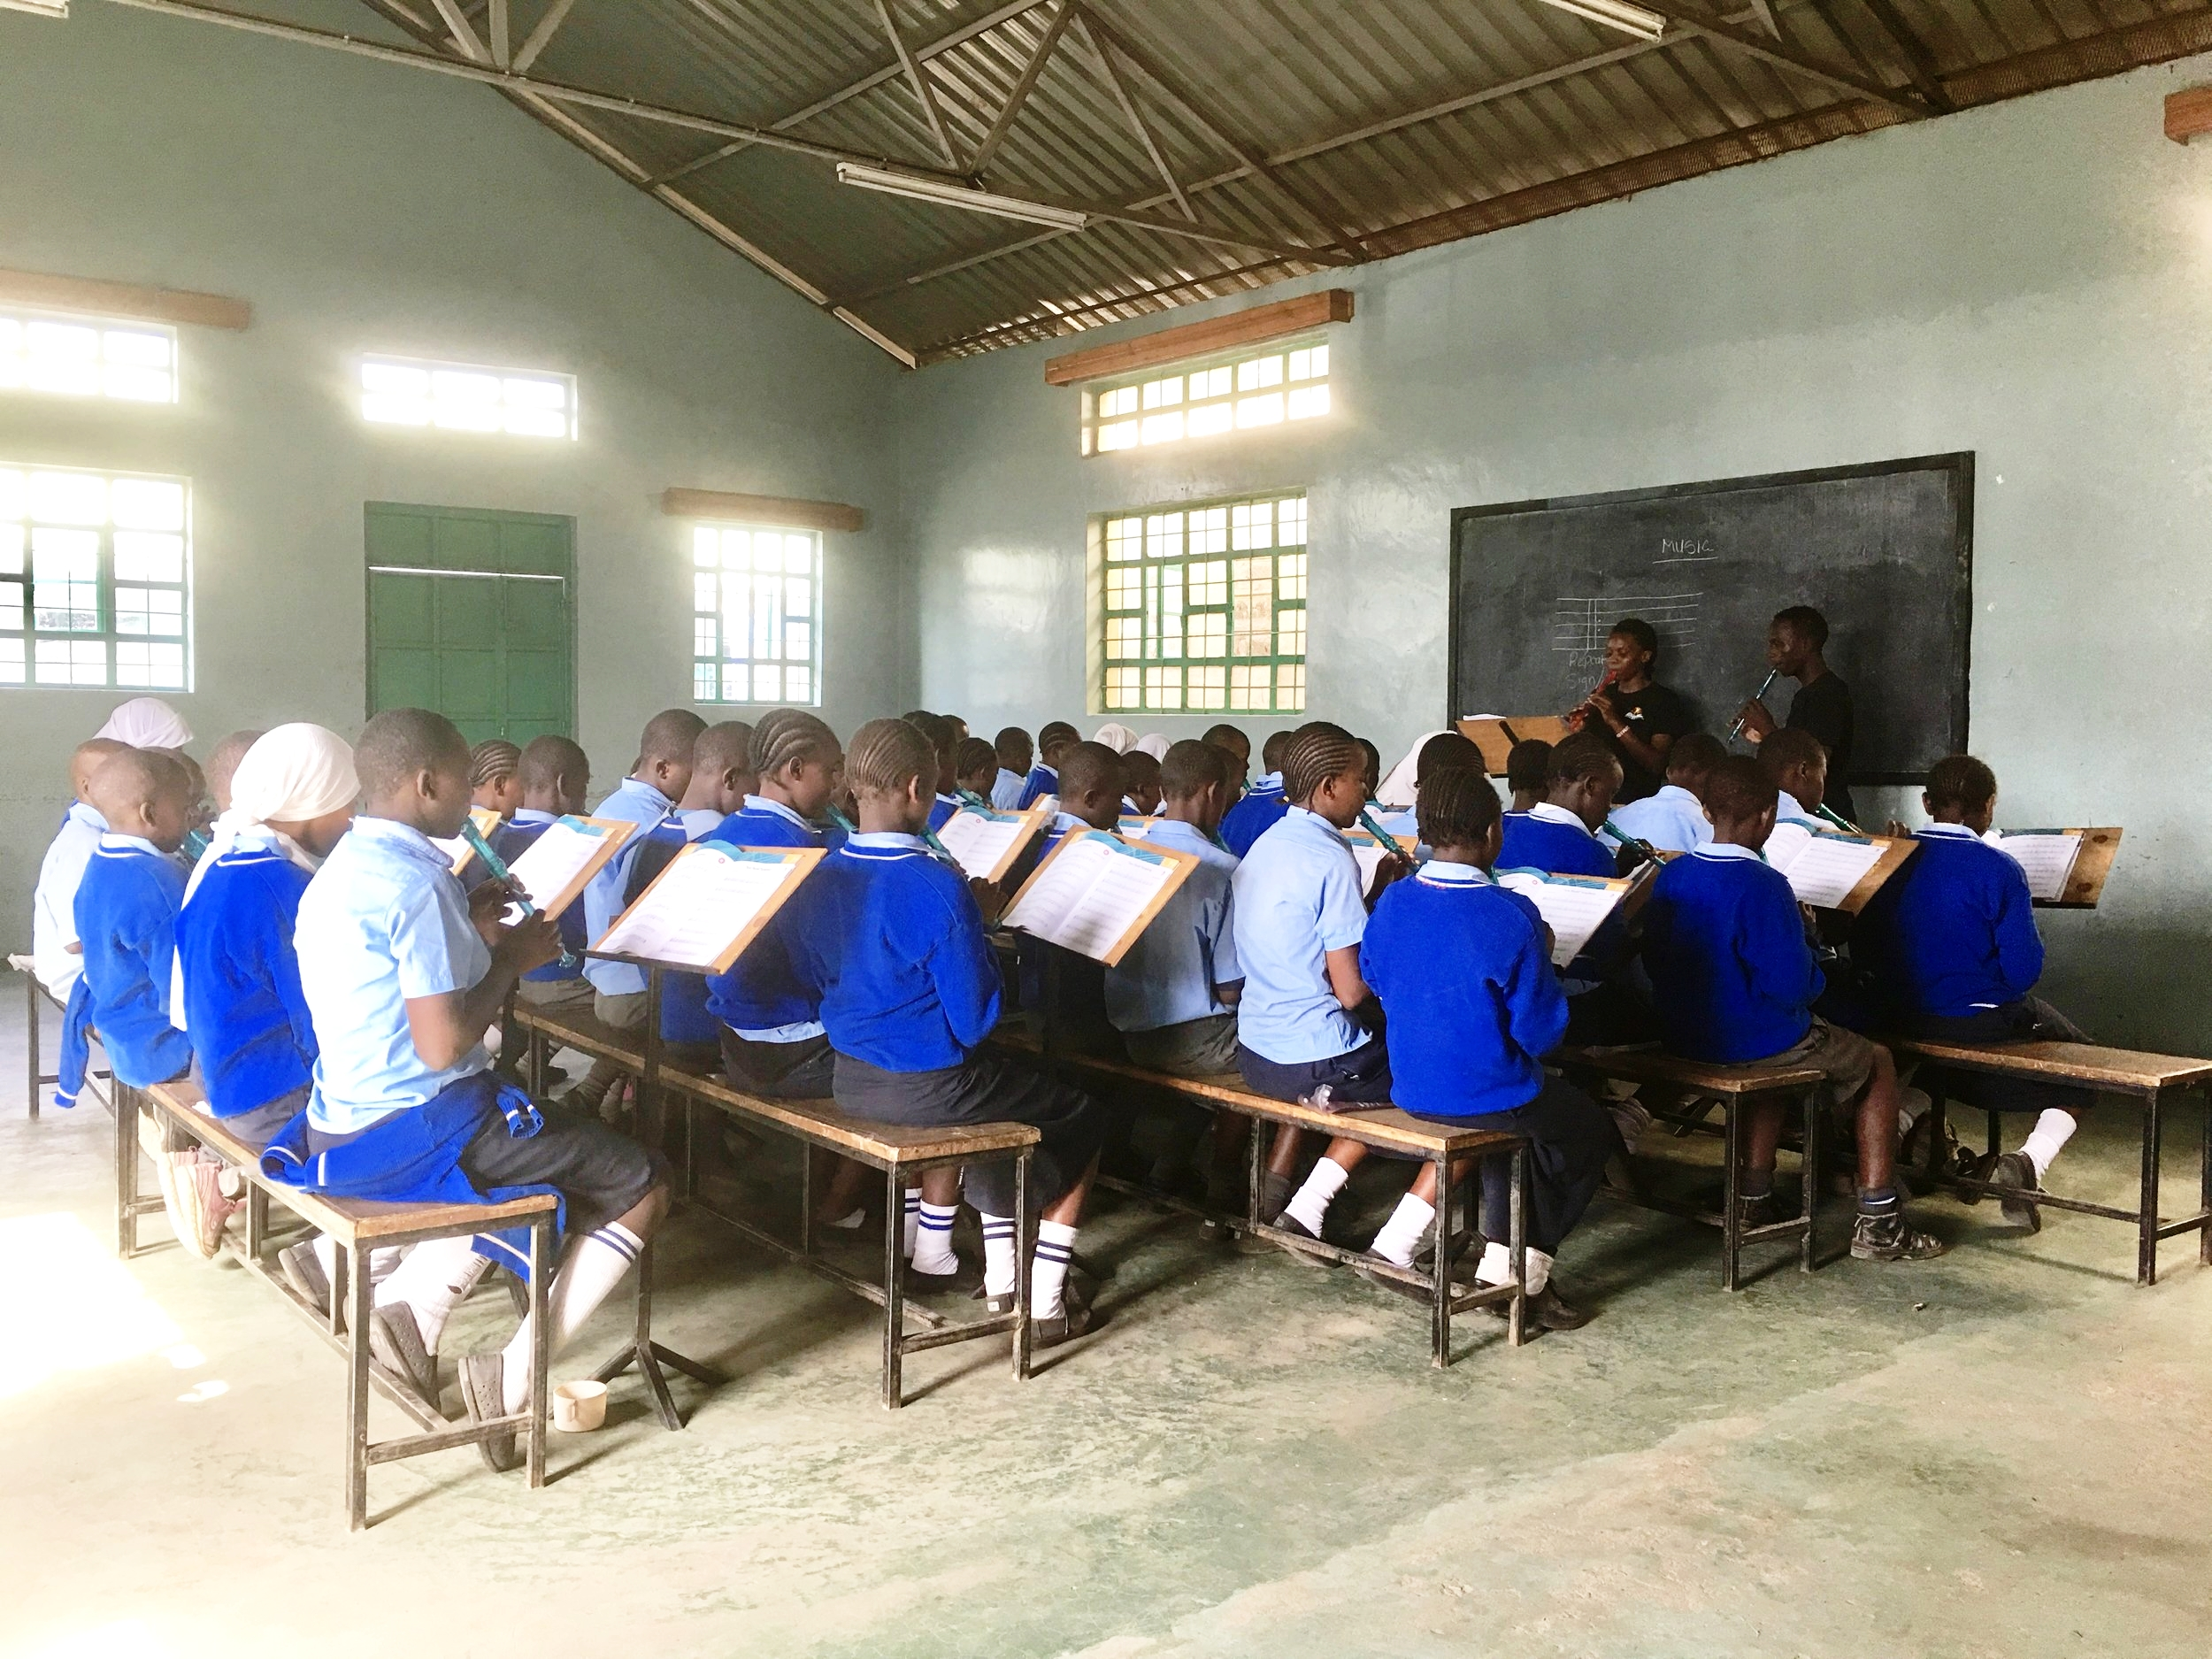 Music class in Korogocho Nairobi. All the students learn how to play the recorder, sight read and music theory.